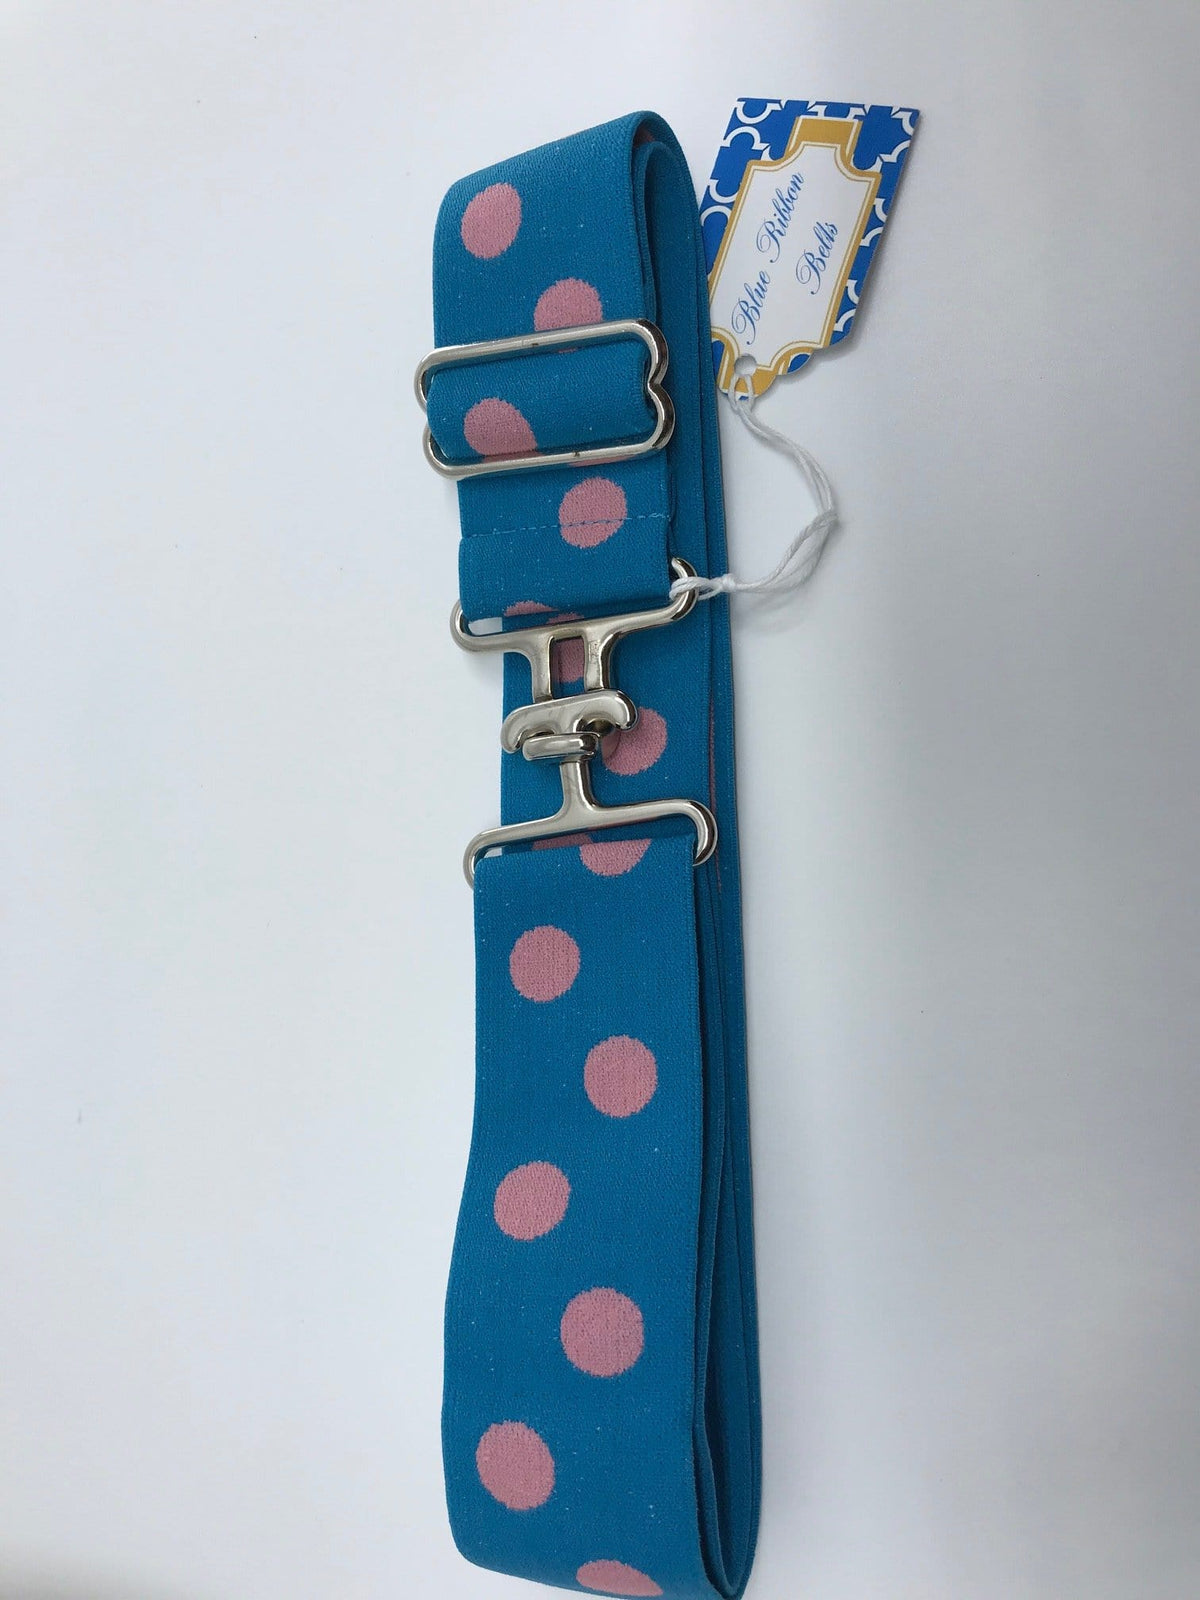 "Blue Ribbon Belts Belt Blue/ Pink Dot Blue Ribbon Belts 1.5"" equestrian team apparel online tack store mobile tack store custom farm apparel custom show stable clothing equestrian lifestyle horse show clothing riding clothes horses equestrian tack store"